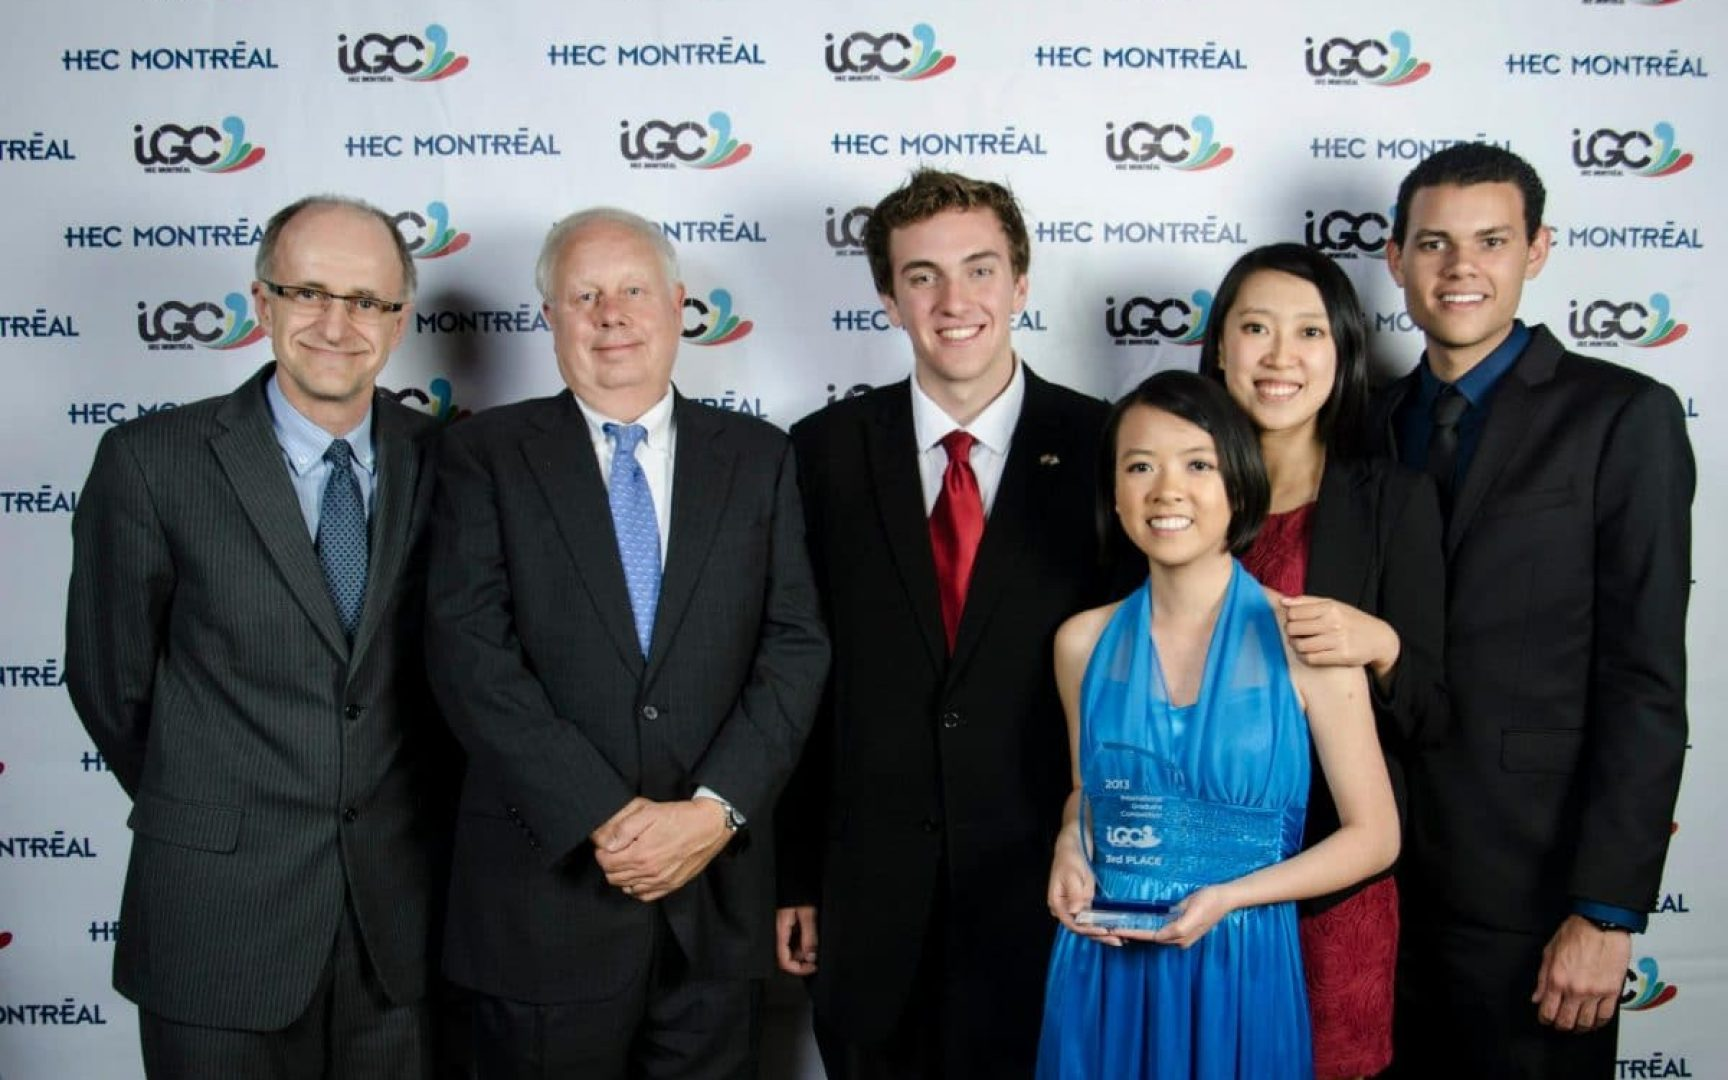 Paul Lanoie, Dr. Brian Gendreau, Mark Supinski, Rachel Chang, Mier Zhou, and Christian Vazquez